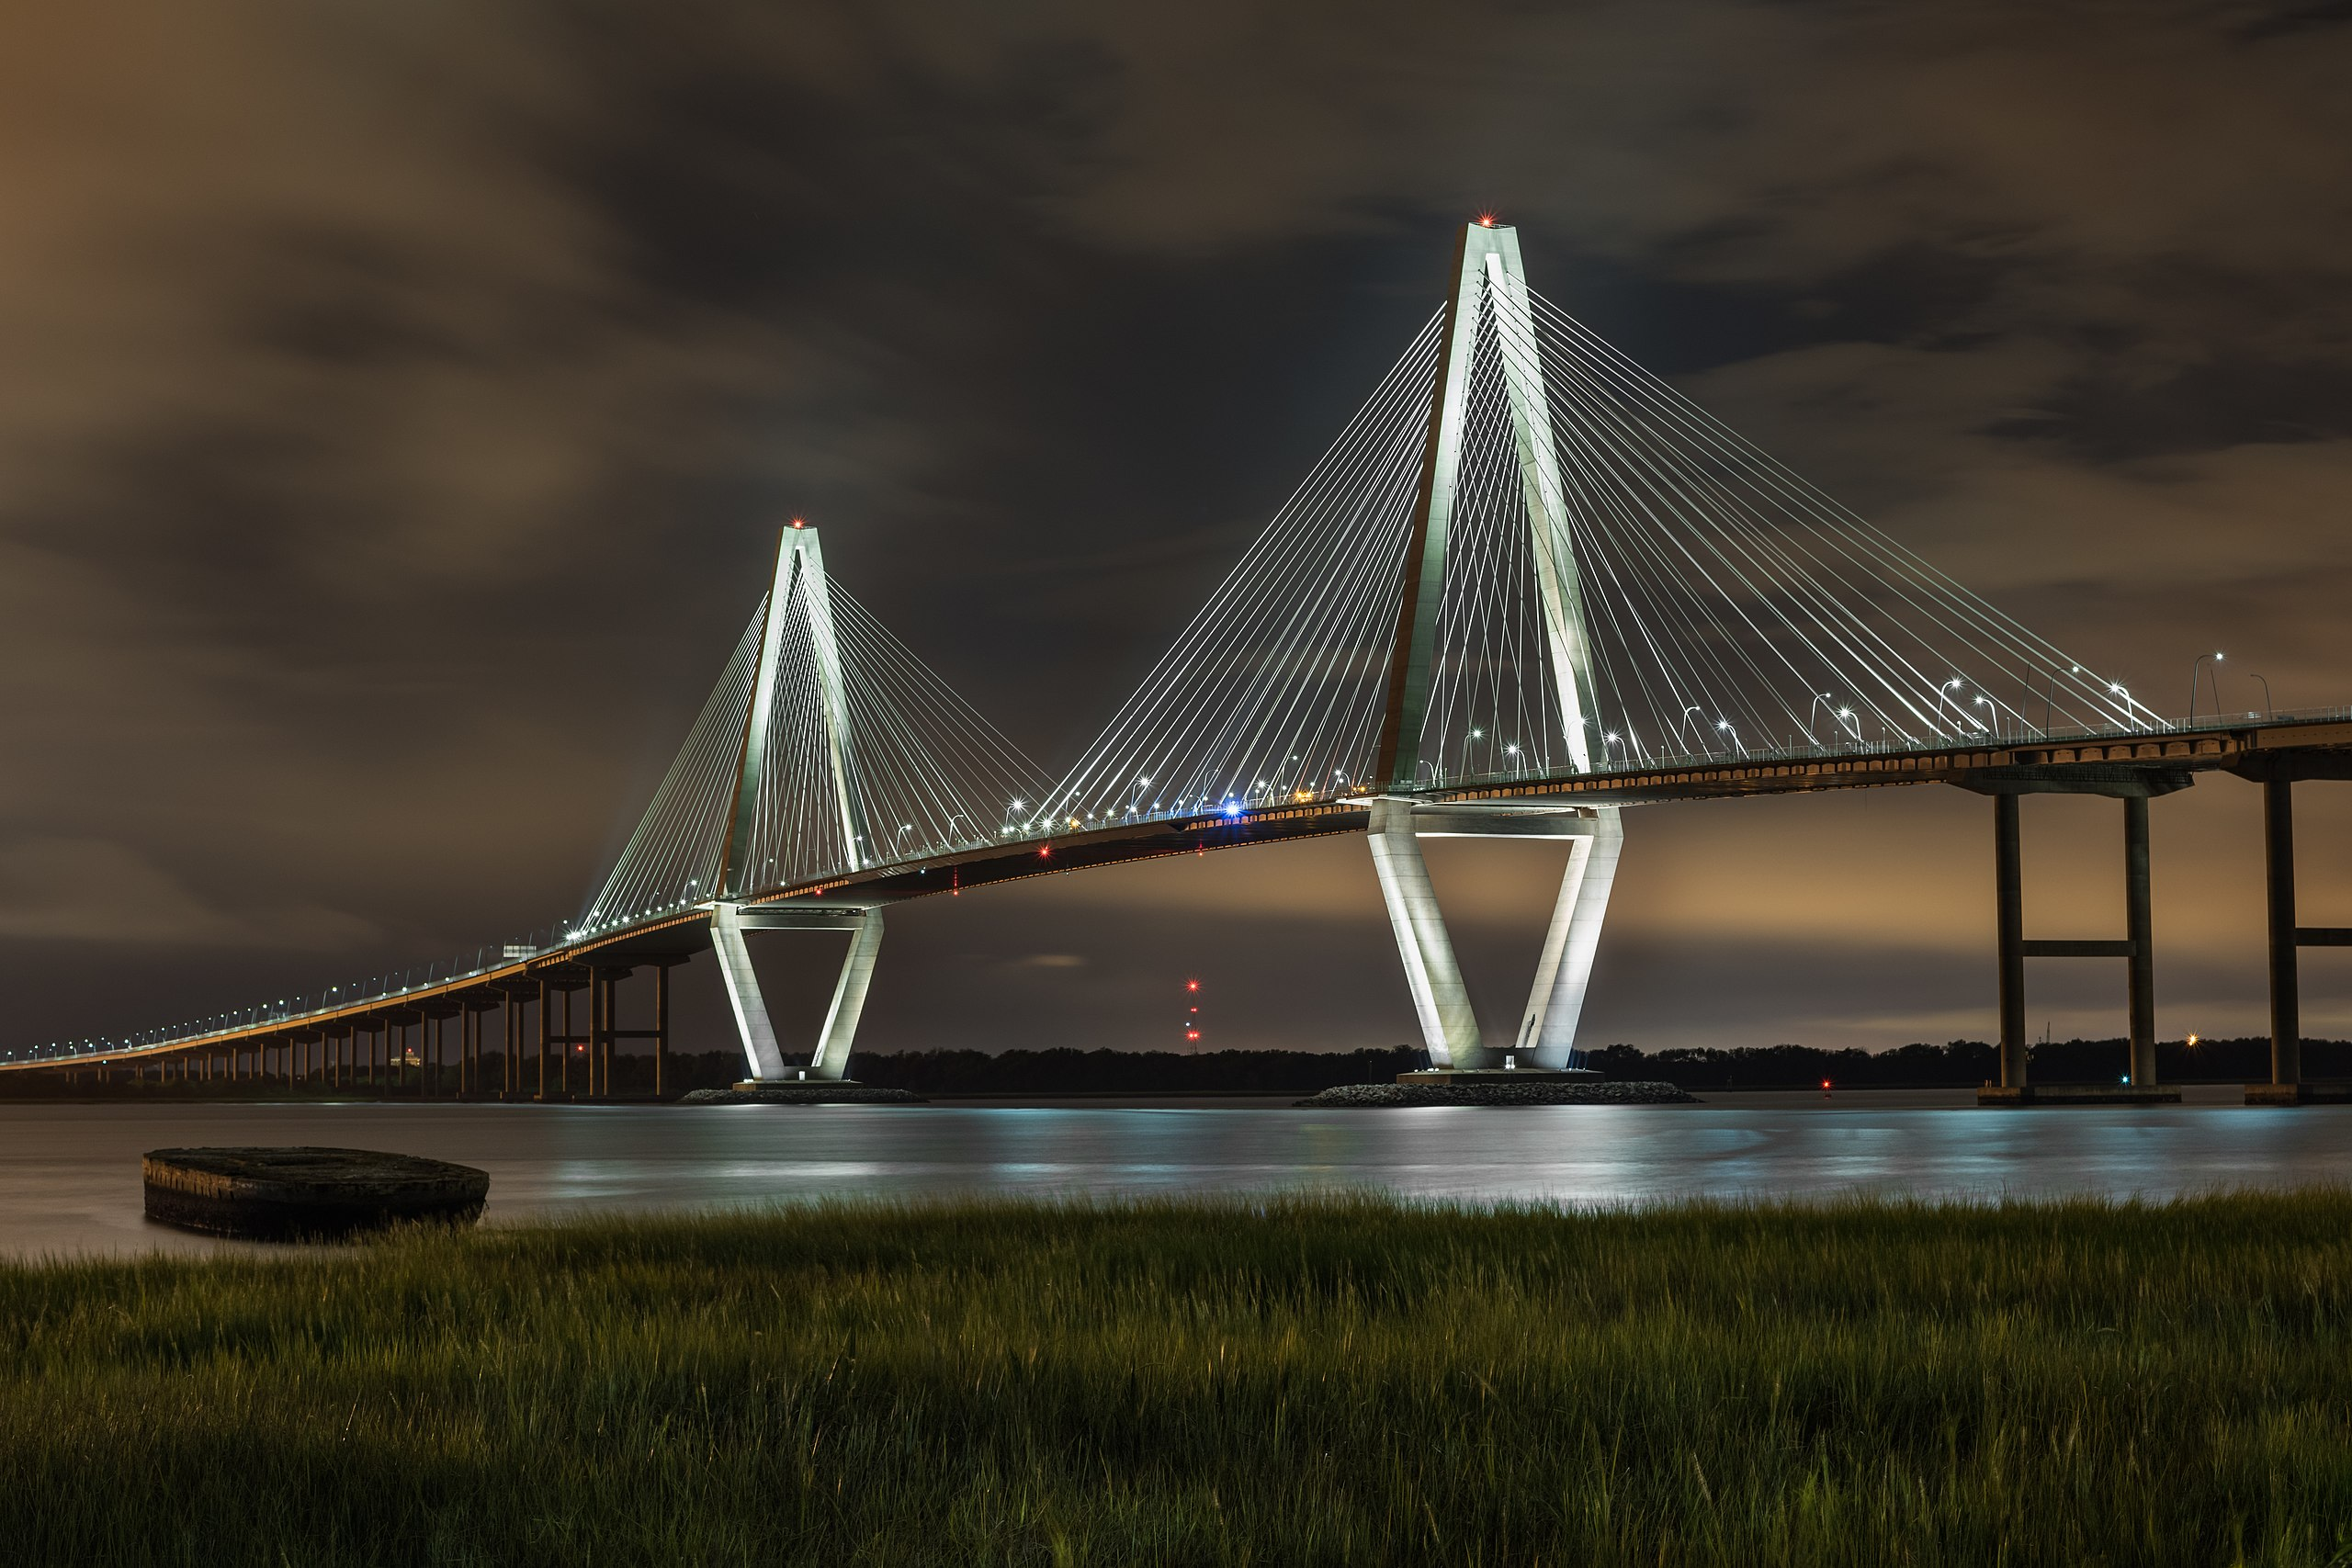 A nighttime picture of the Arthur Ravenal Bridge which connects Mount Pleasant to Charleston.